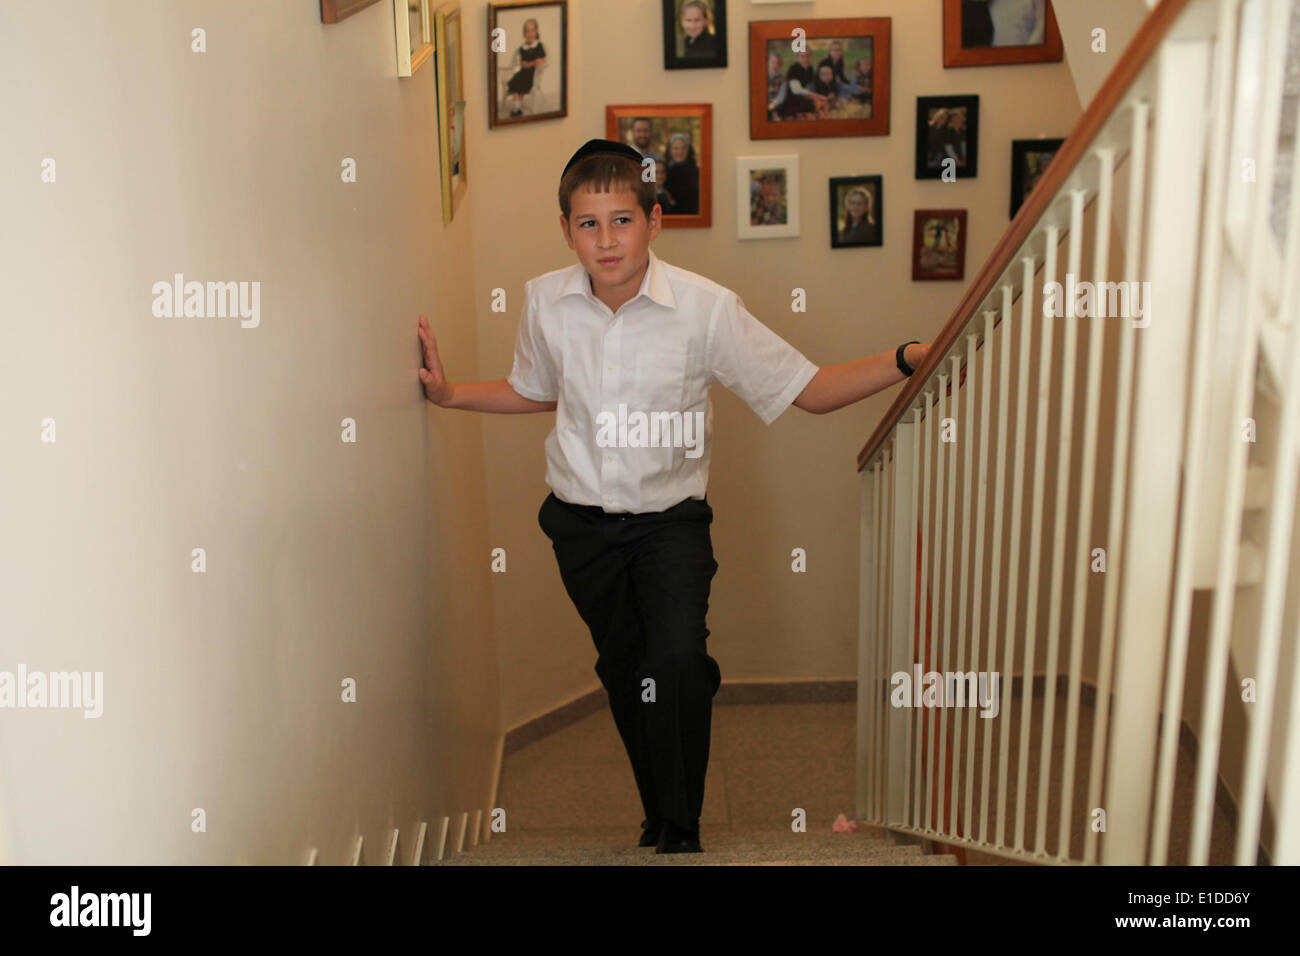 (140601) -- JERUSALEM, June 1, 2014 (Xinhua) -- Tzviel Noyman stands in front of the wall with family photos at his home in Beit Shemesh, about 20 km from Jerusalem, on May 30, 2014. Tzviel Noyman is an Israeli Ultra-Orthodox boy in a family with six children, three boys and three girls. He is ten years old this year and a grade three pupil of Torat Moshe elementary school, which is only opened to Jewish children. Tzviel has eight classes each day, including Hebrew, English, mathematics and Jewish religion, which has four classes each day including Talmud, Mishnah and Gemara. Tzviel likes the - Stock Image